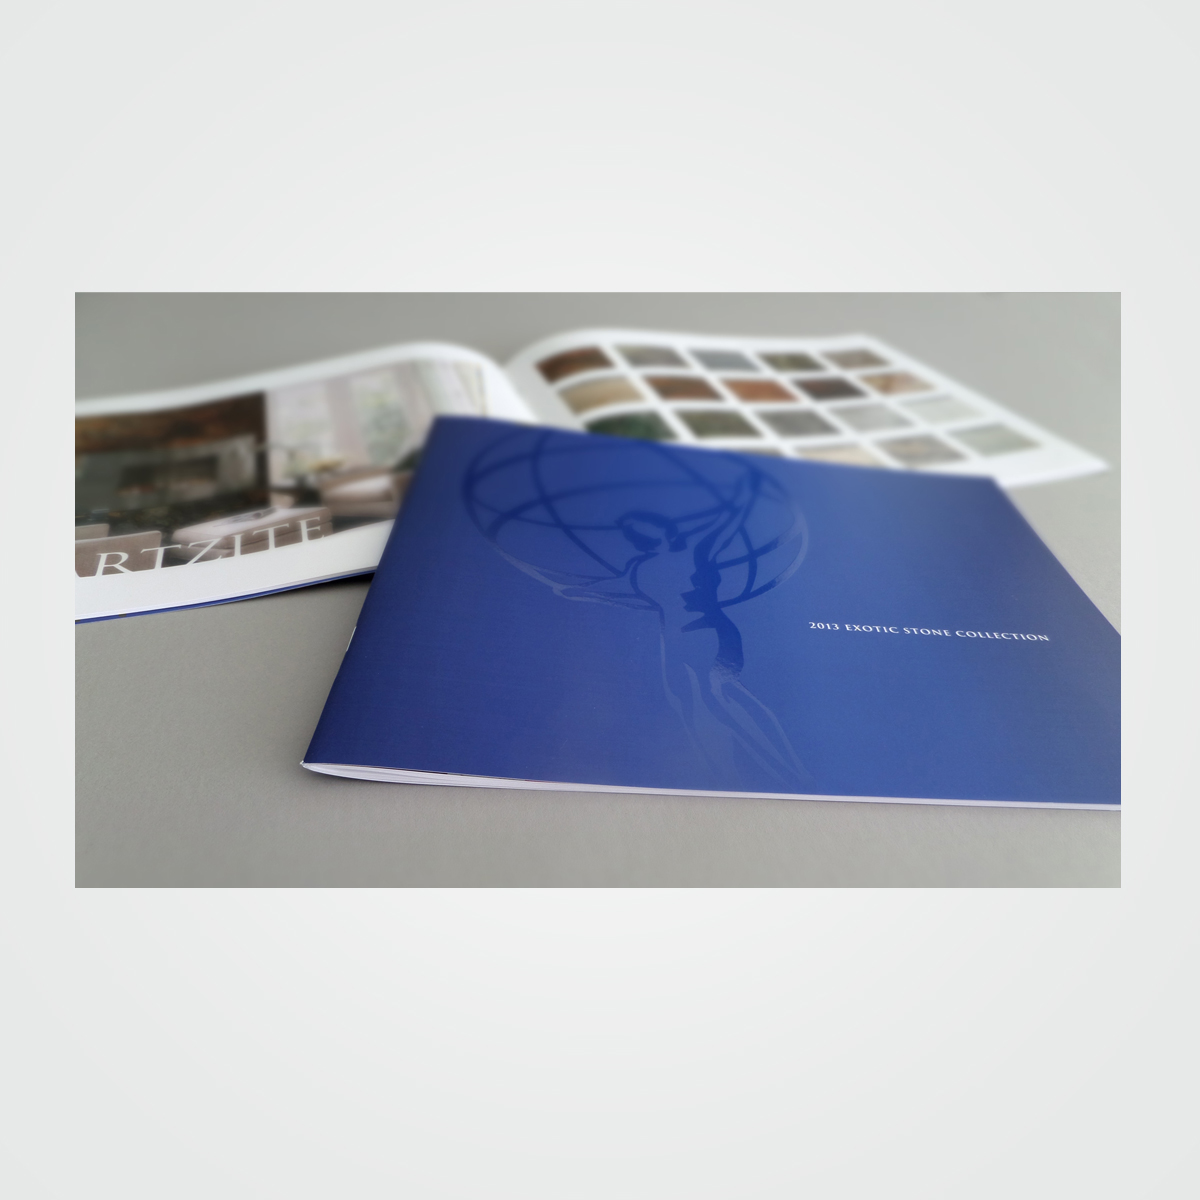 Product catalog / sales brochure design for Marble Of The World, Fort Lauderdale